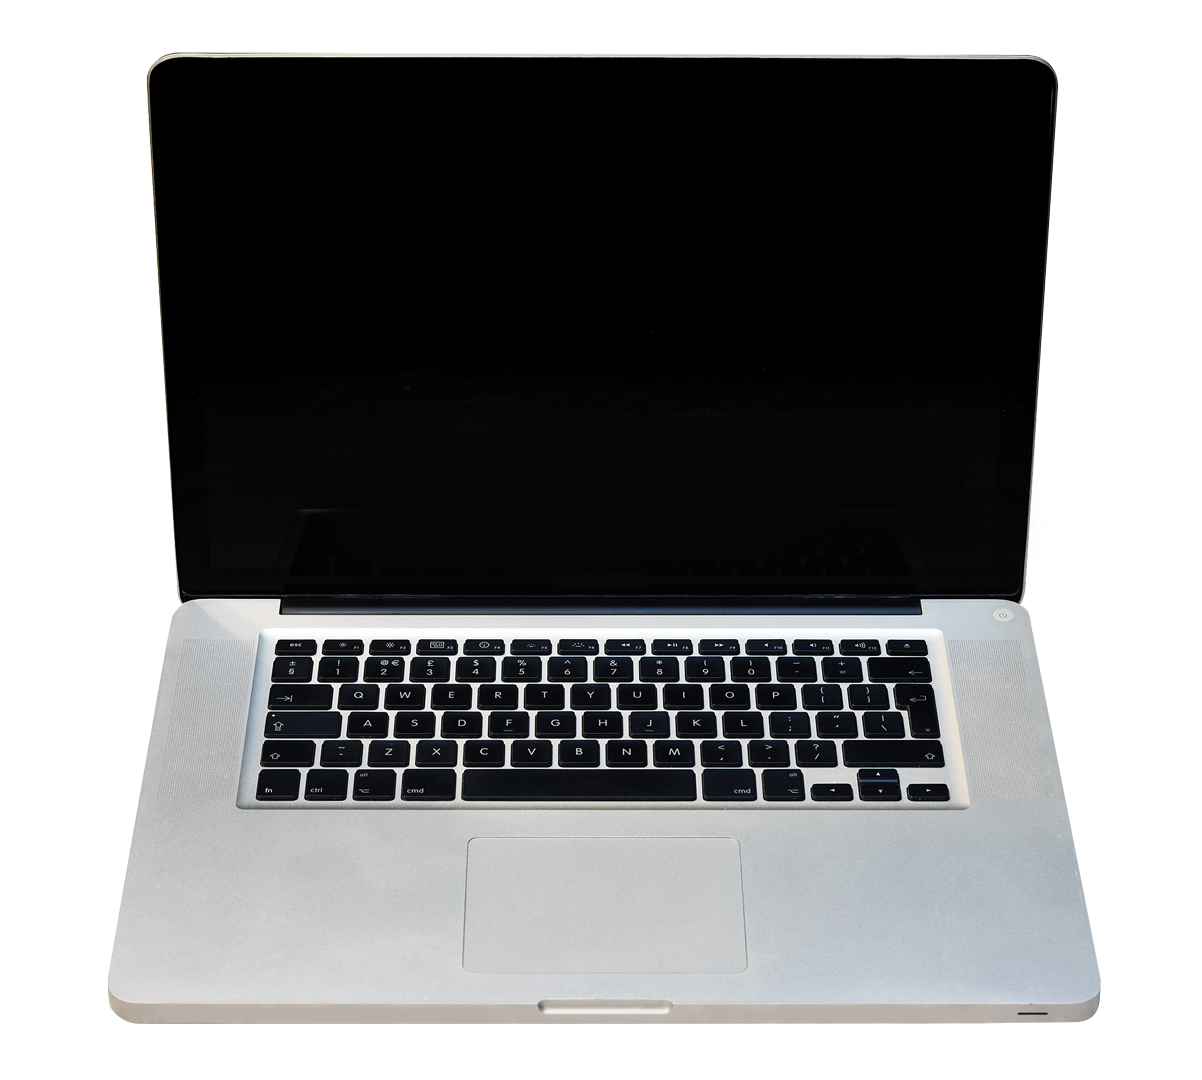 Image of a laptop computer used as a decorative background